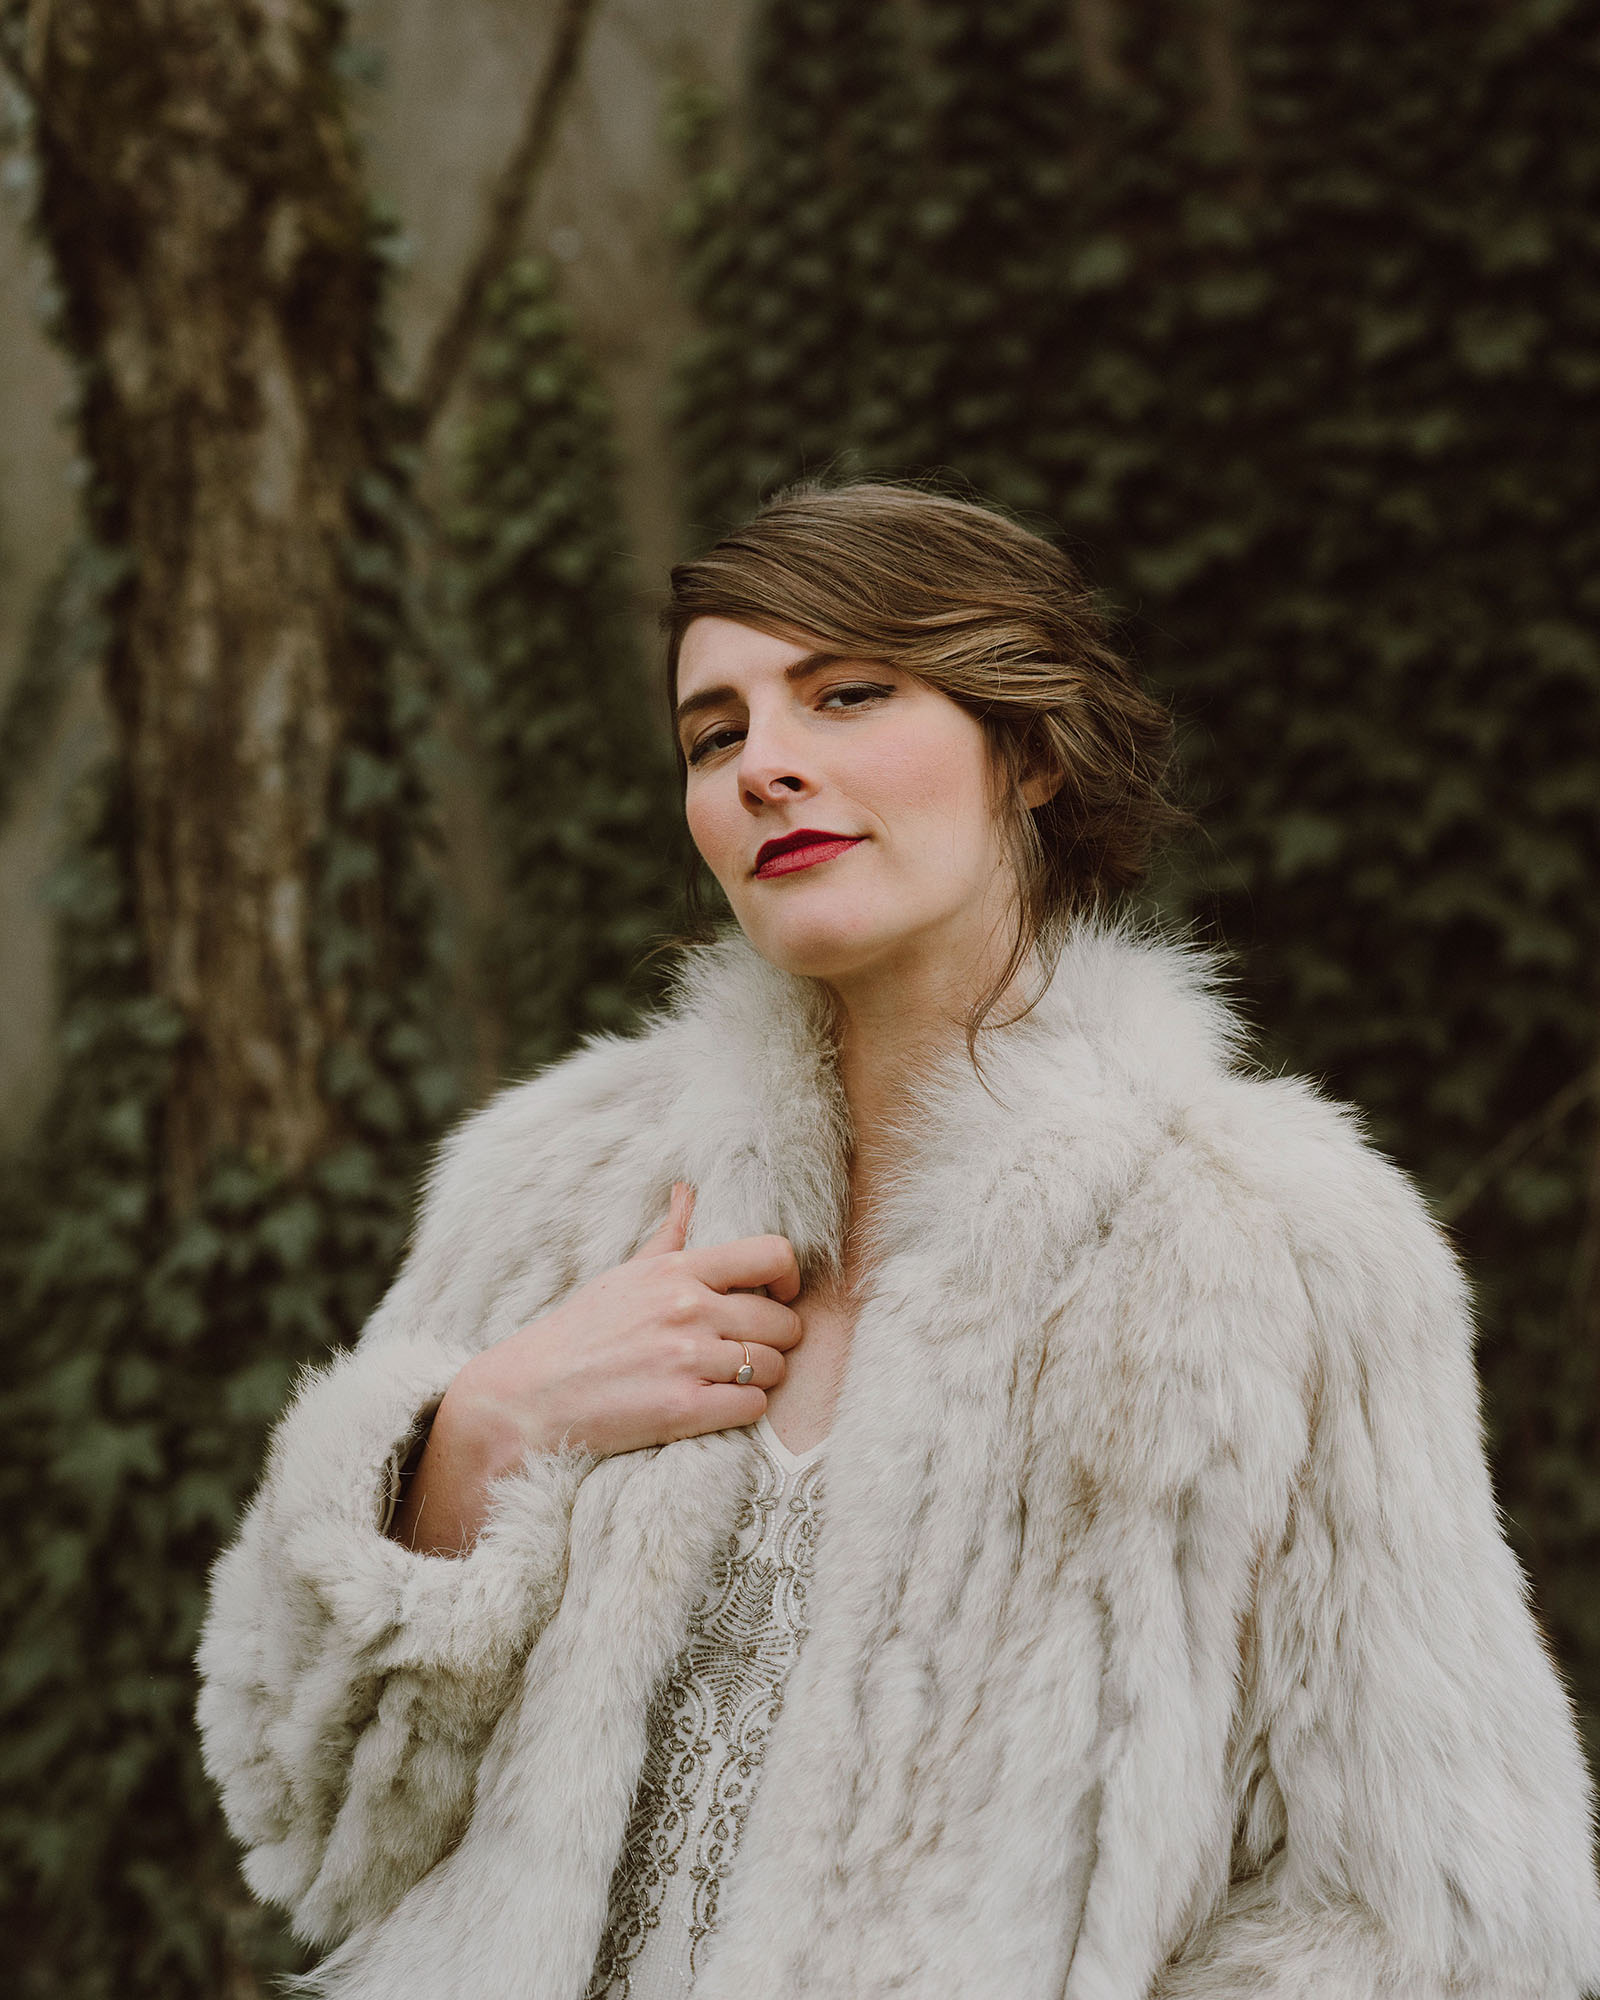 Portland Bridal Photography - Candid photo of Bride in a fur coat